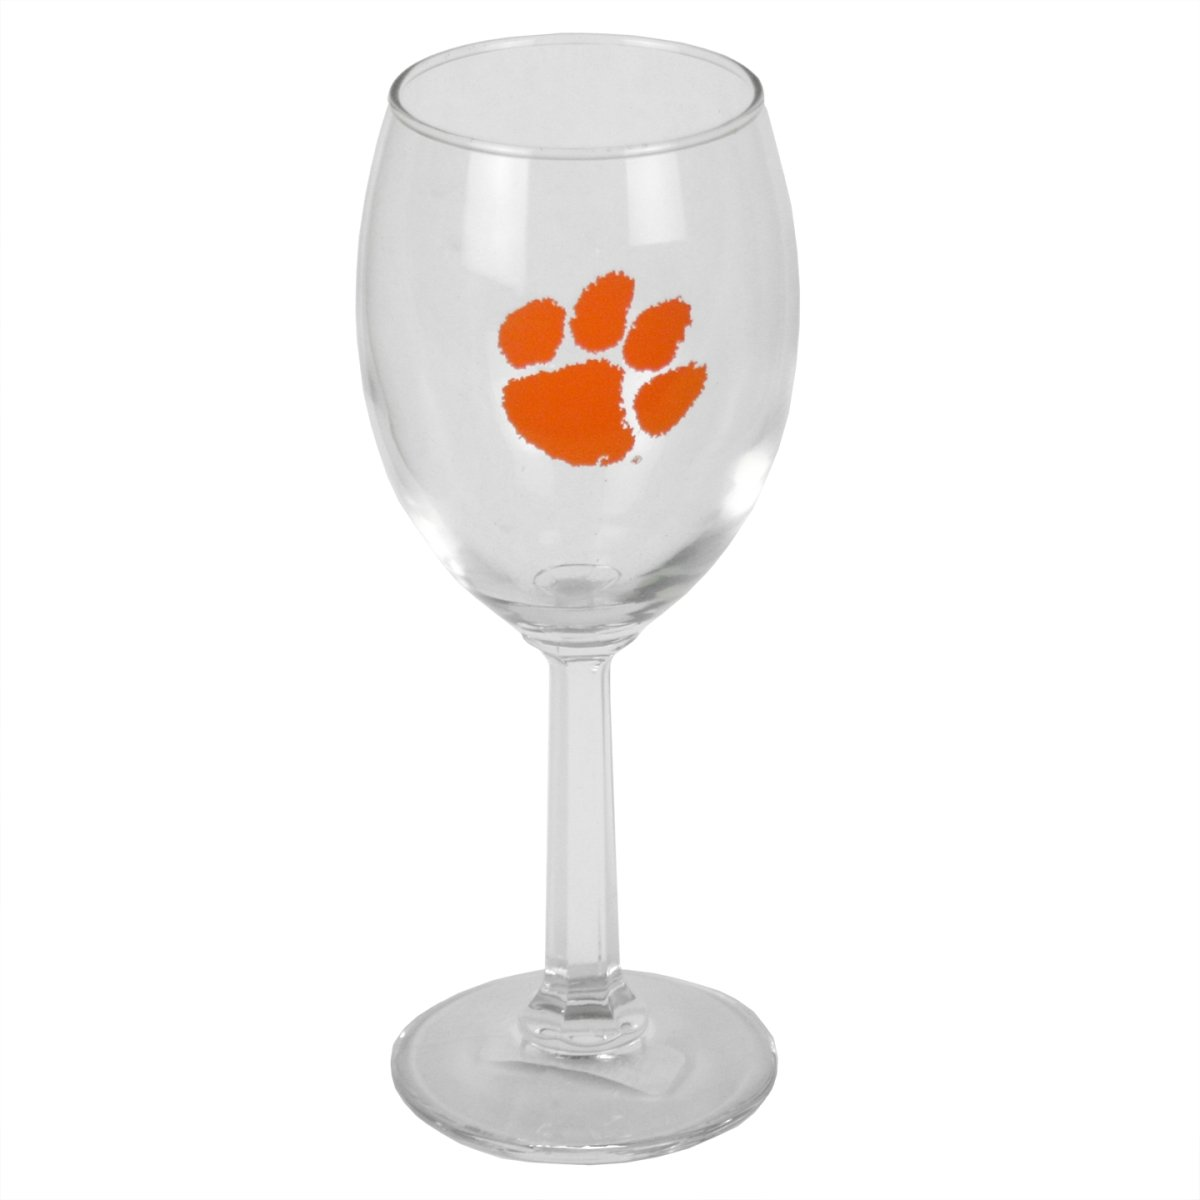 8 Oz Wine Glass With Orange Paw - Mr. Knickerbocker